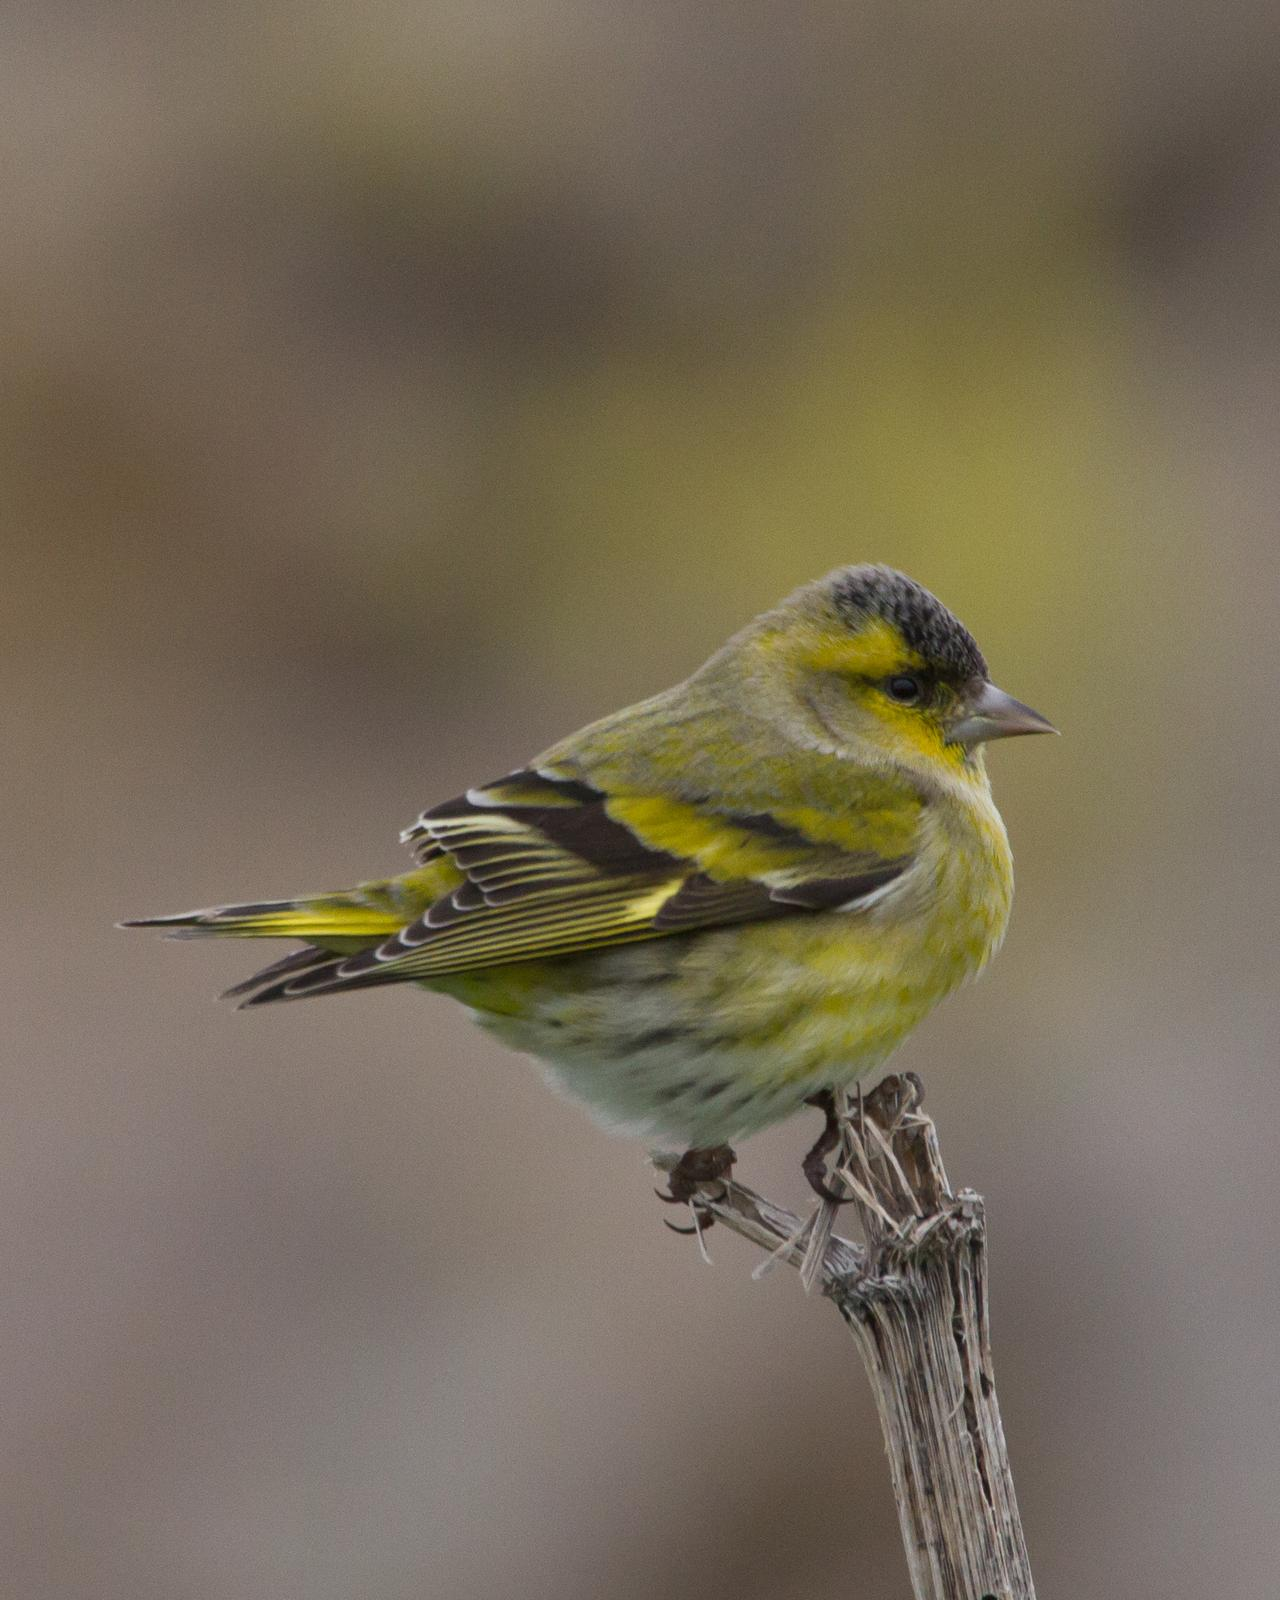 Eurasian Siskin Photo by Kasia  Ganderska Someya